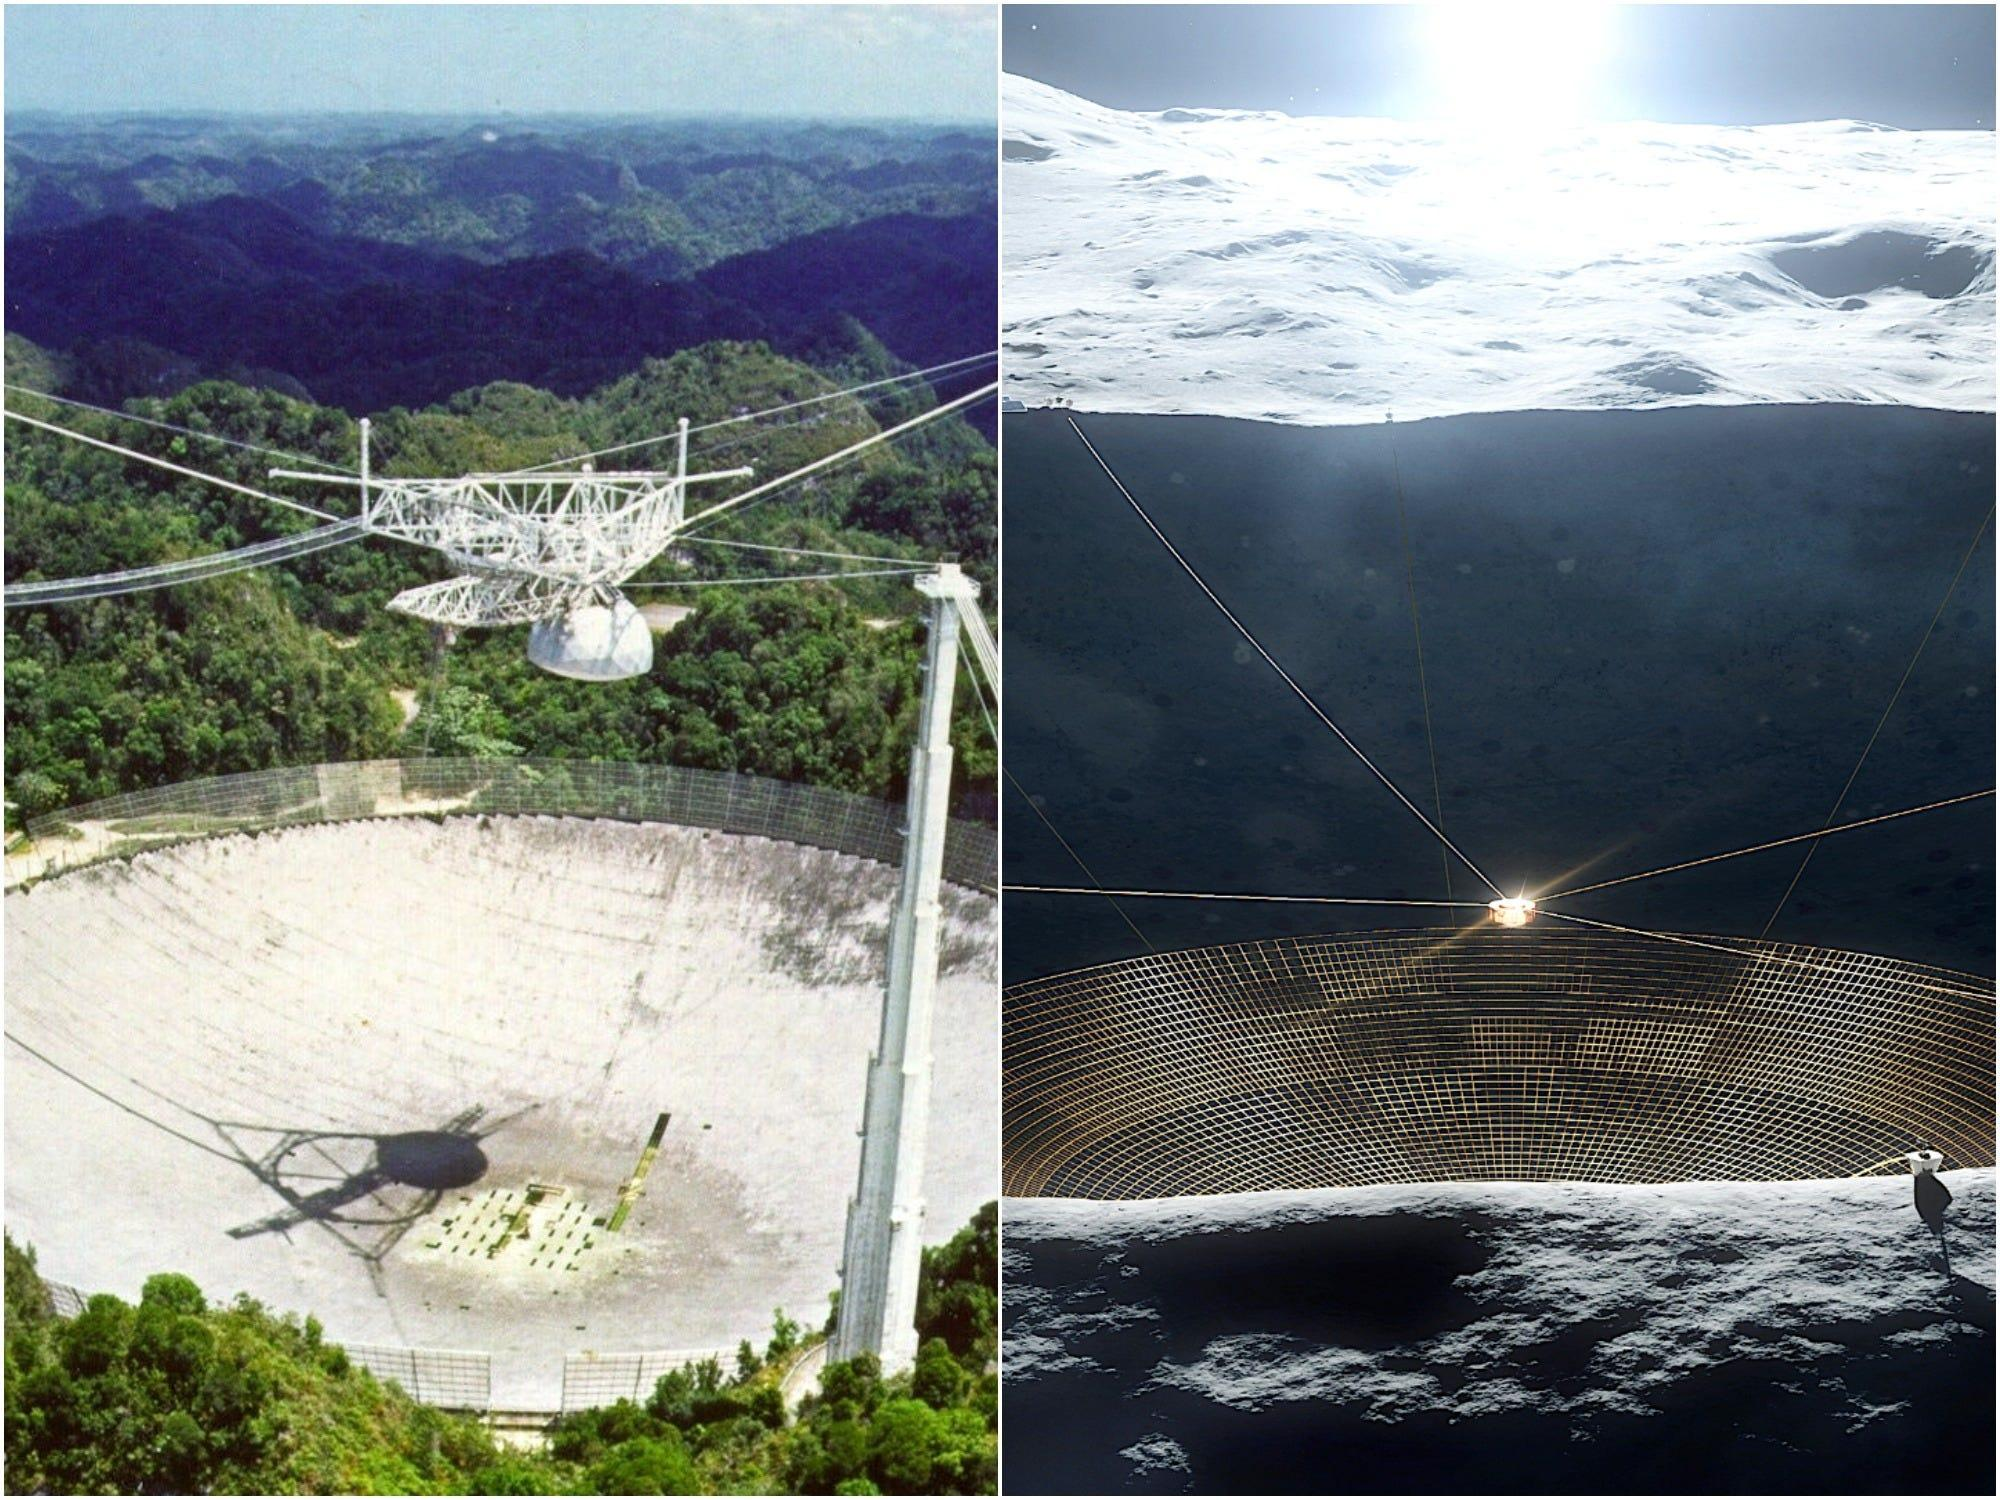 NASA is developing a plan to build an Arecibo-like telescope on the moon